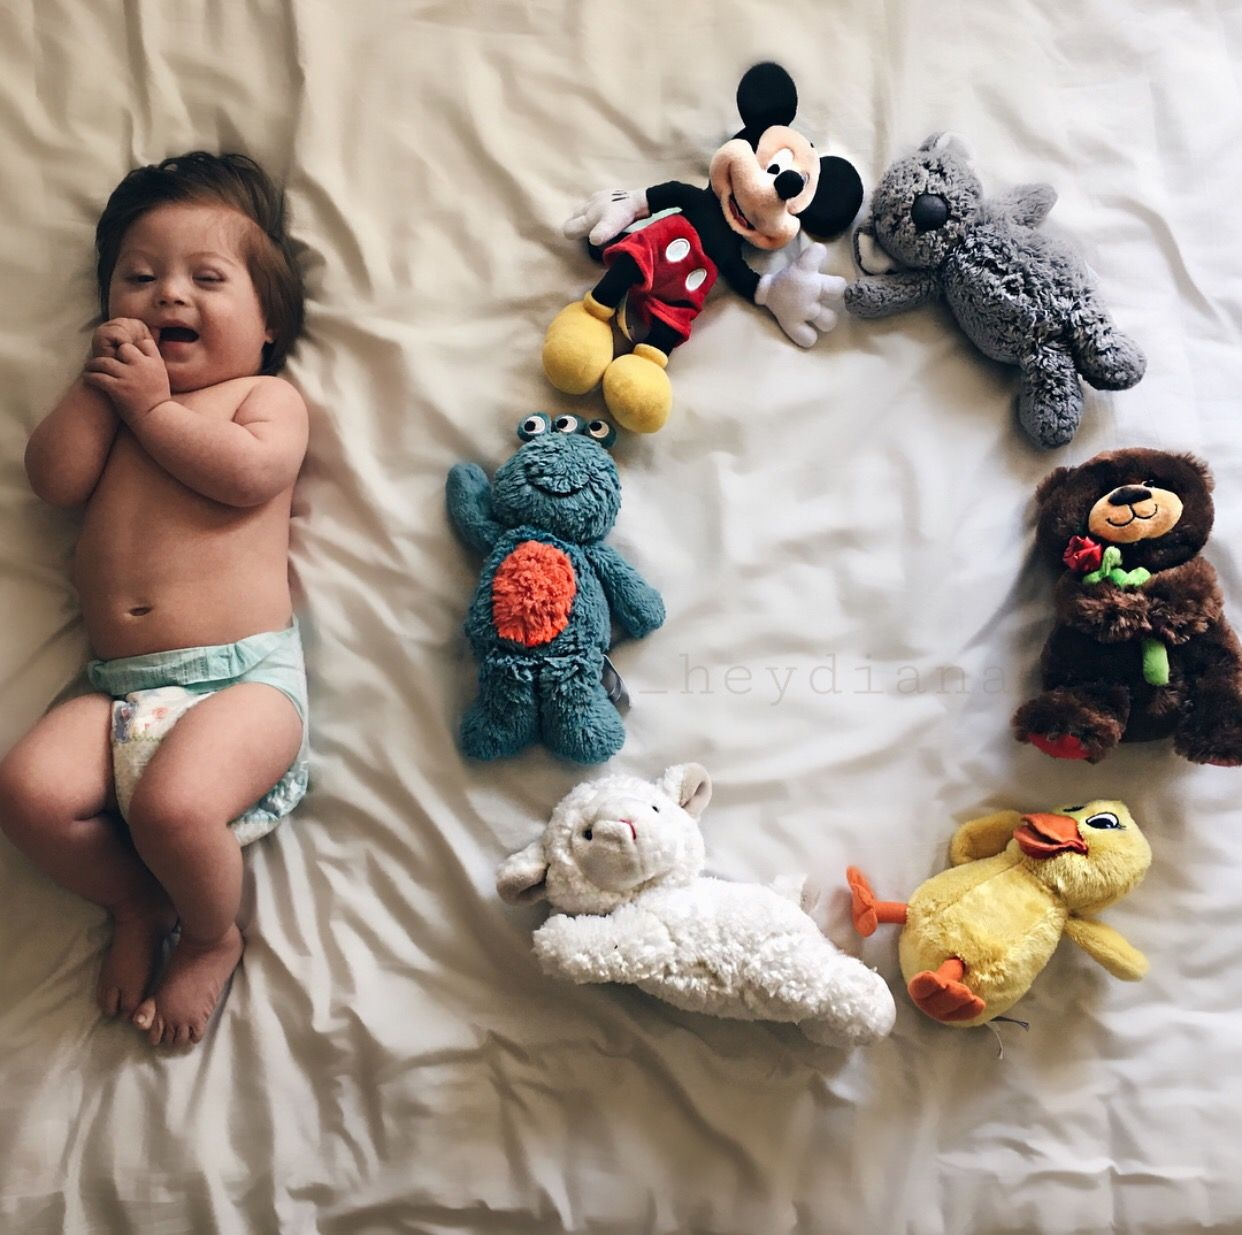 10 Month Old Baby Boy Mickeymouse Favoriteplushtoys Mommylife Cutebaby Baby Boy Newborn Photography Monthly Baby Pictures Baby Month By Month